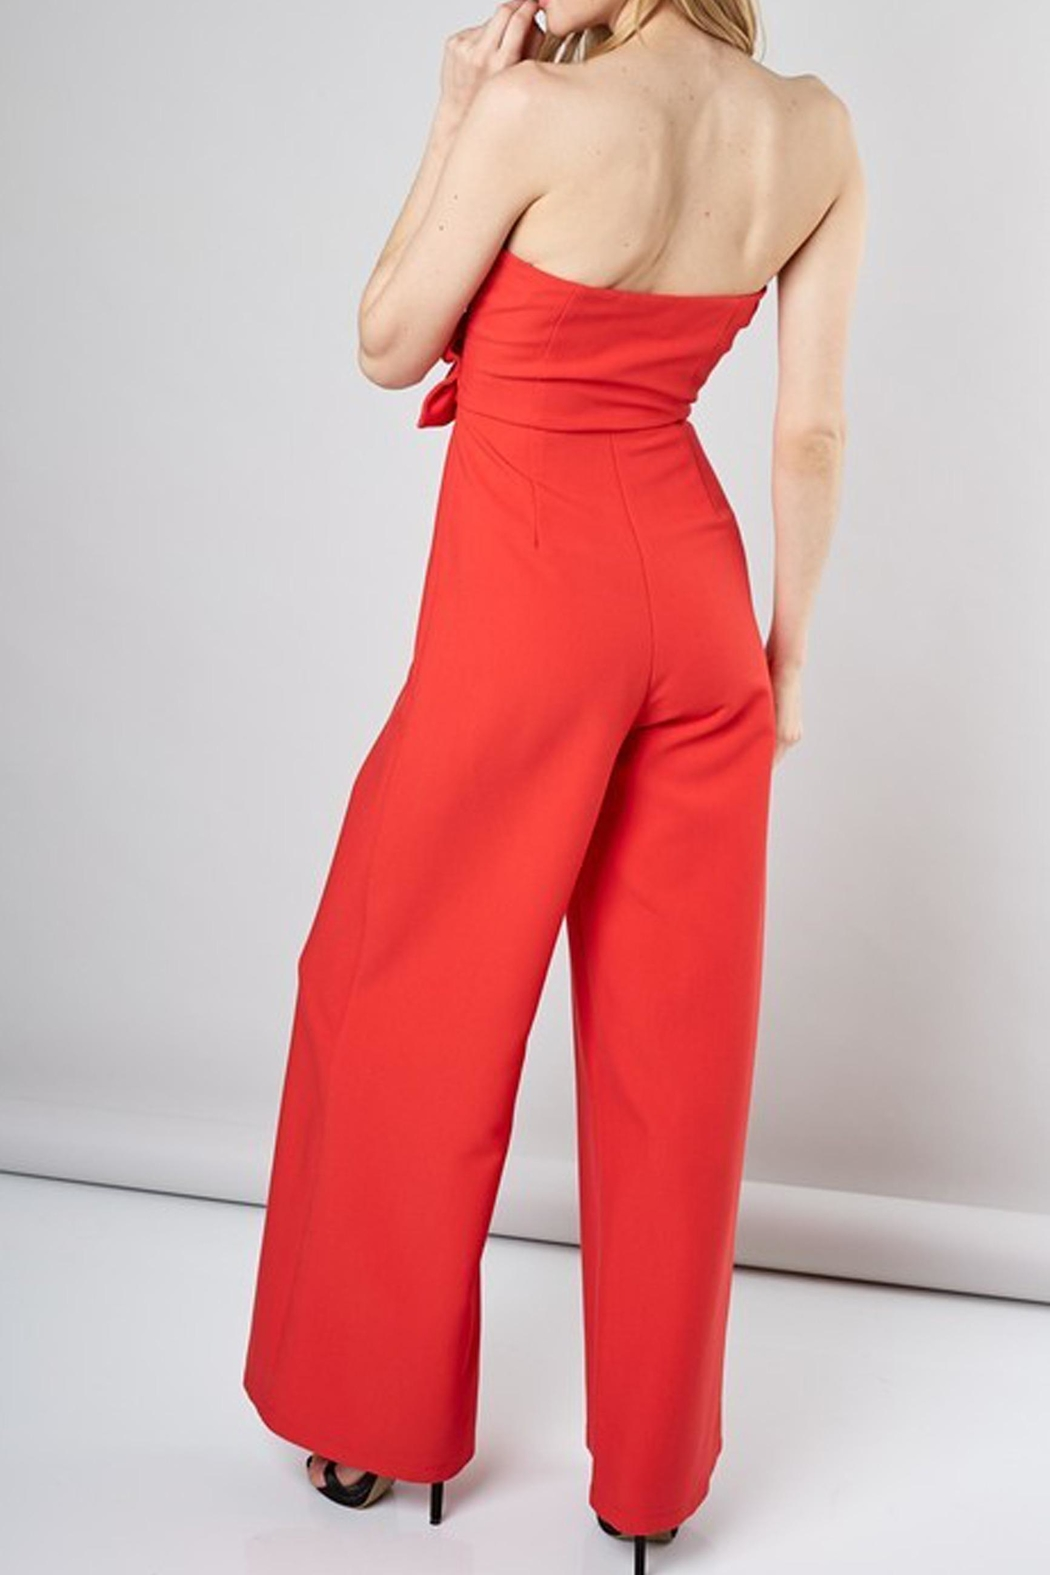 Do & Be Camilla Ruffled Jumpsuit - Front Full Image